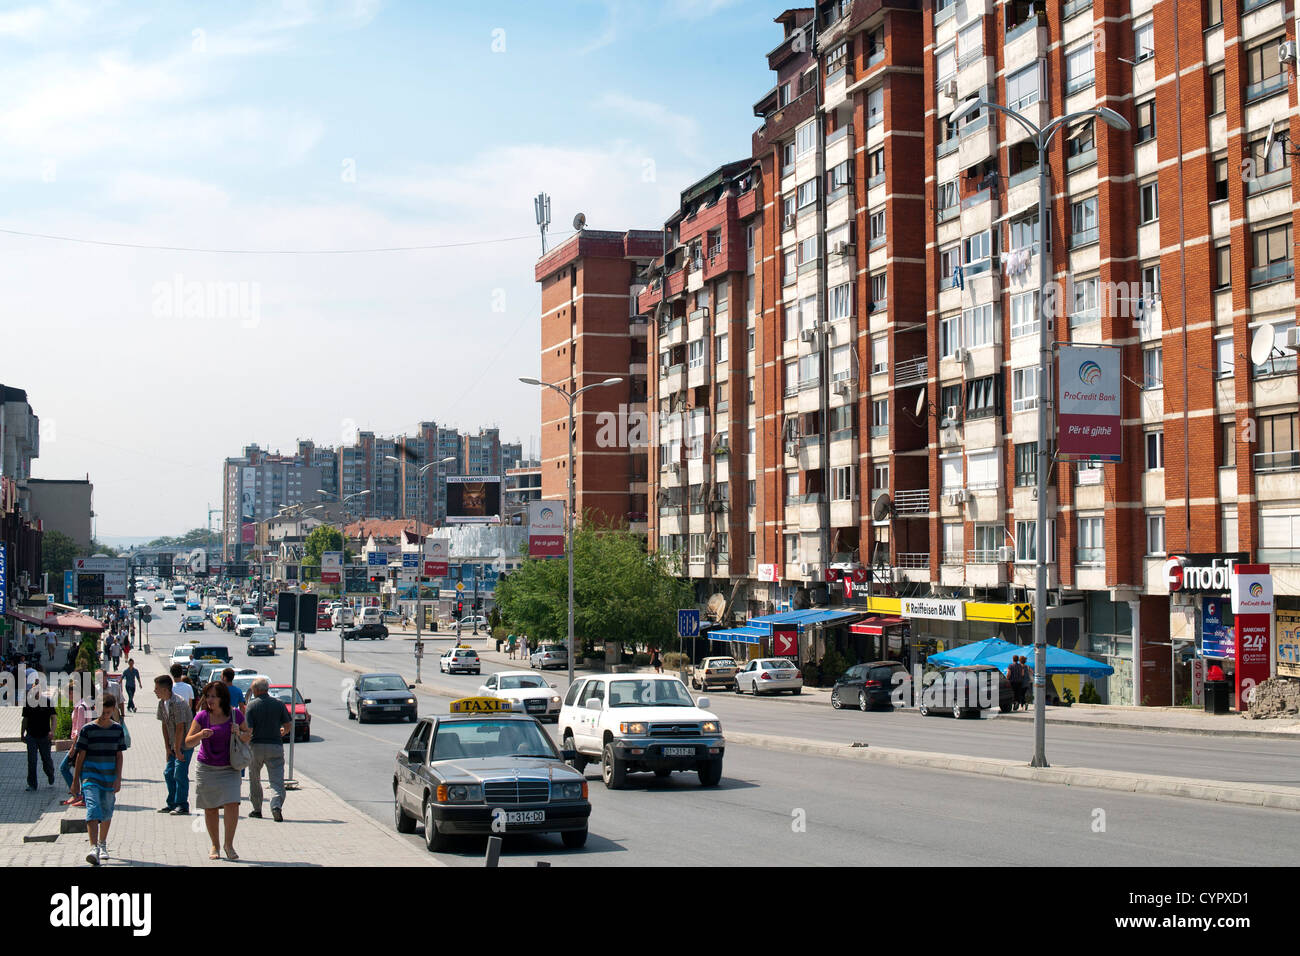 Bill Clinton Boulevard in Pristina, the capital of the Republic of Kosovo. - Stock Image